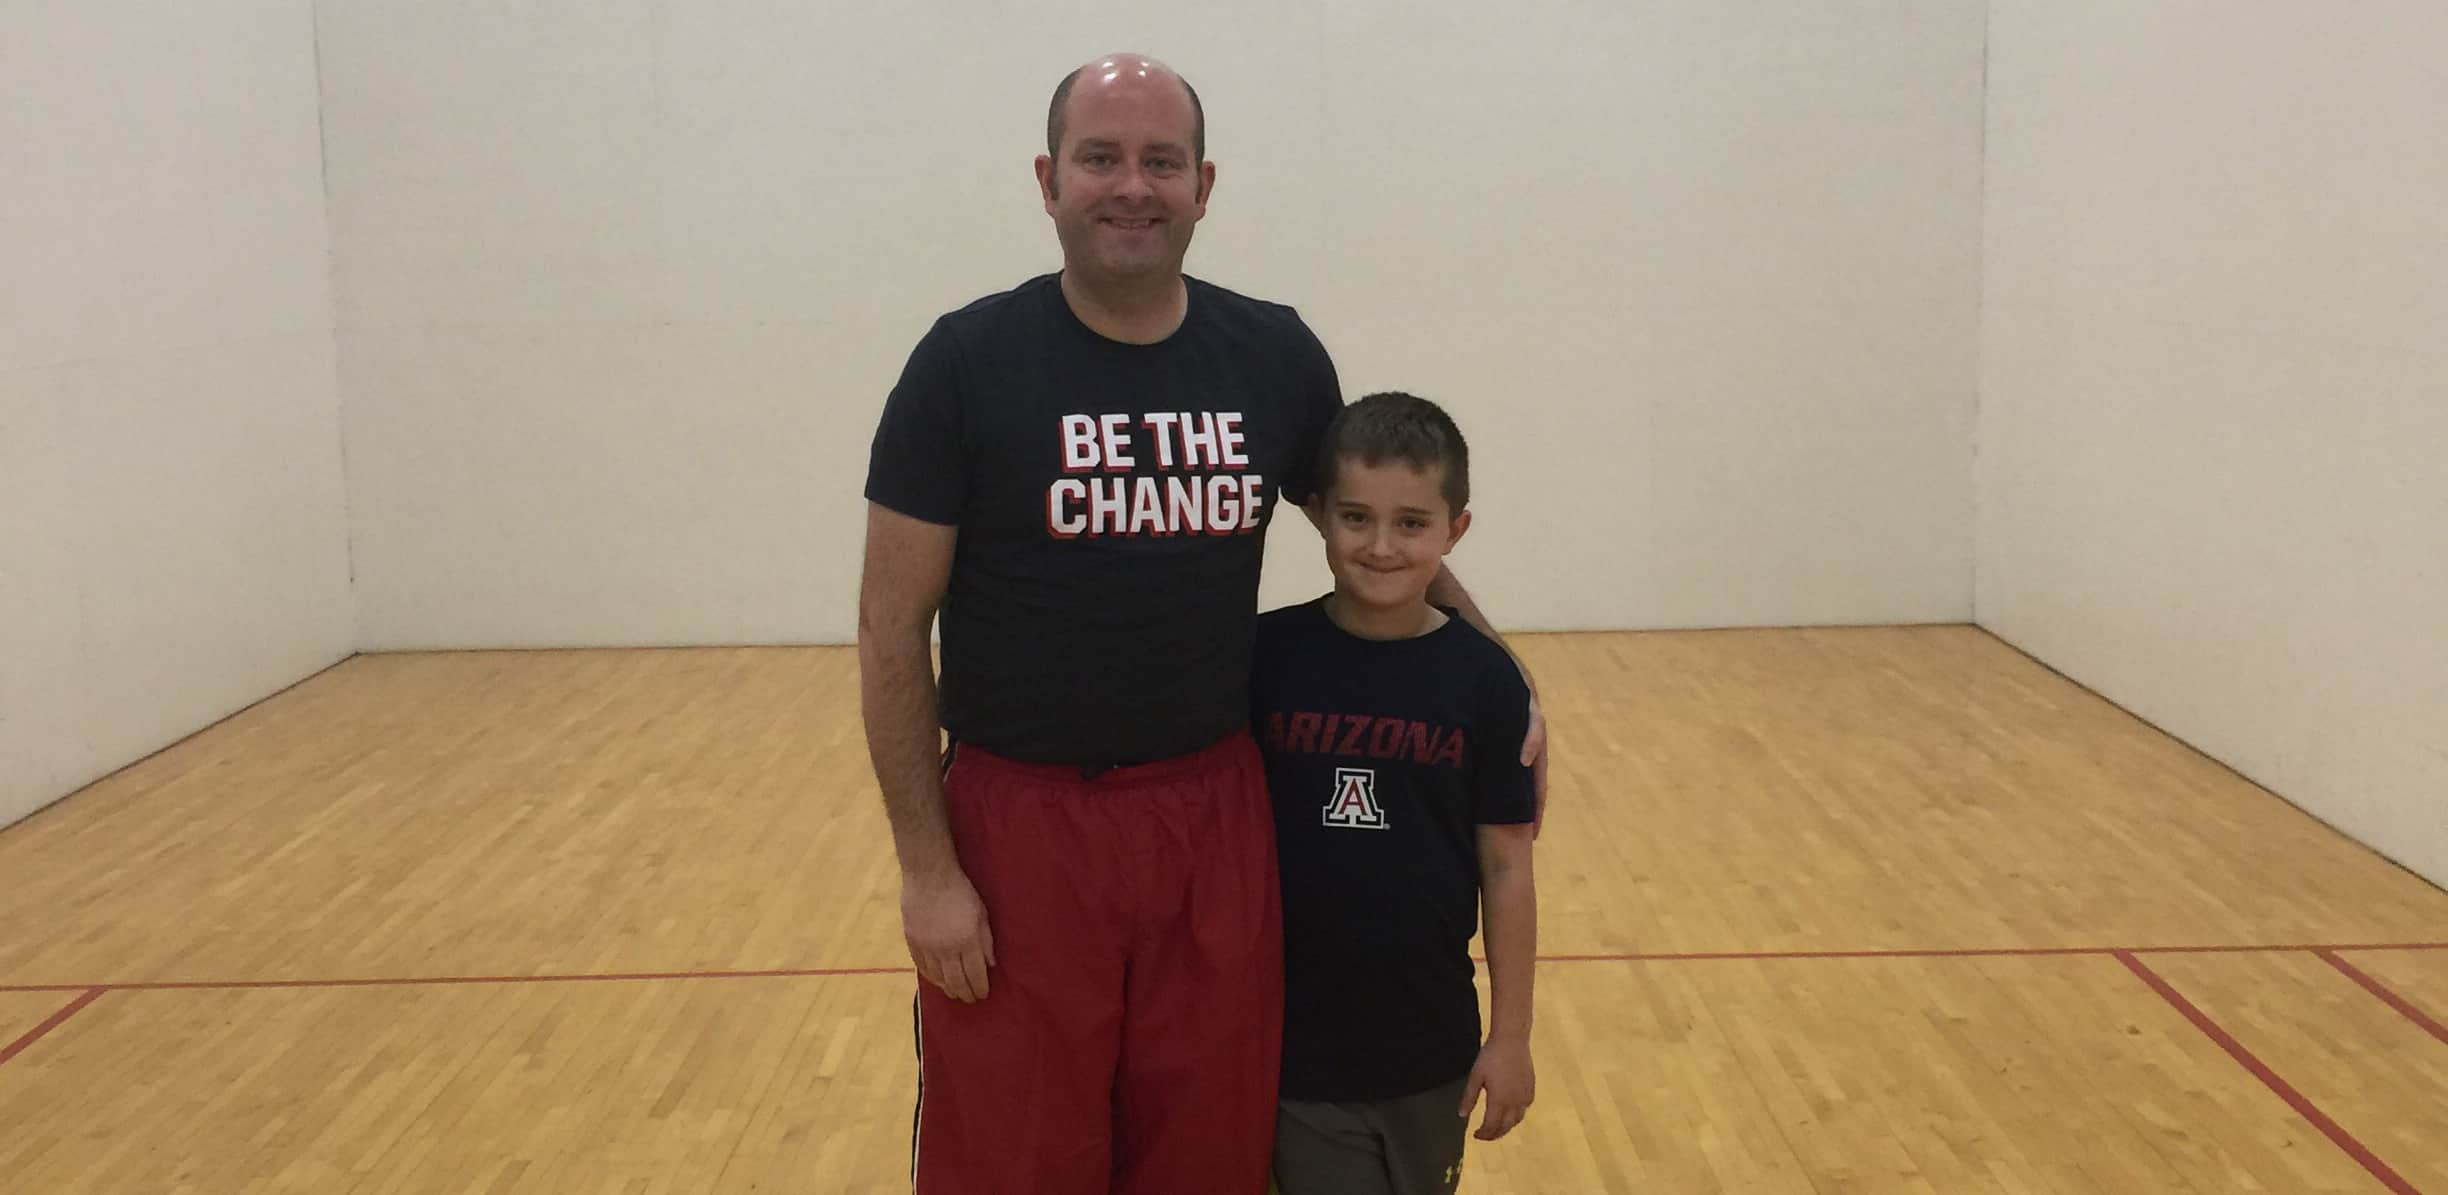 Anthony and his son work out together at the Y.